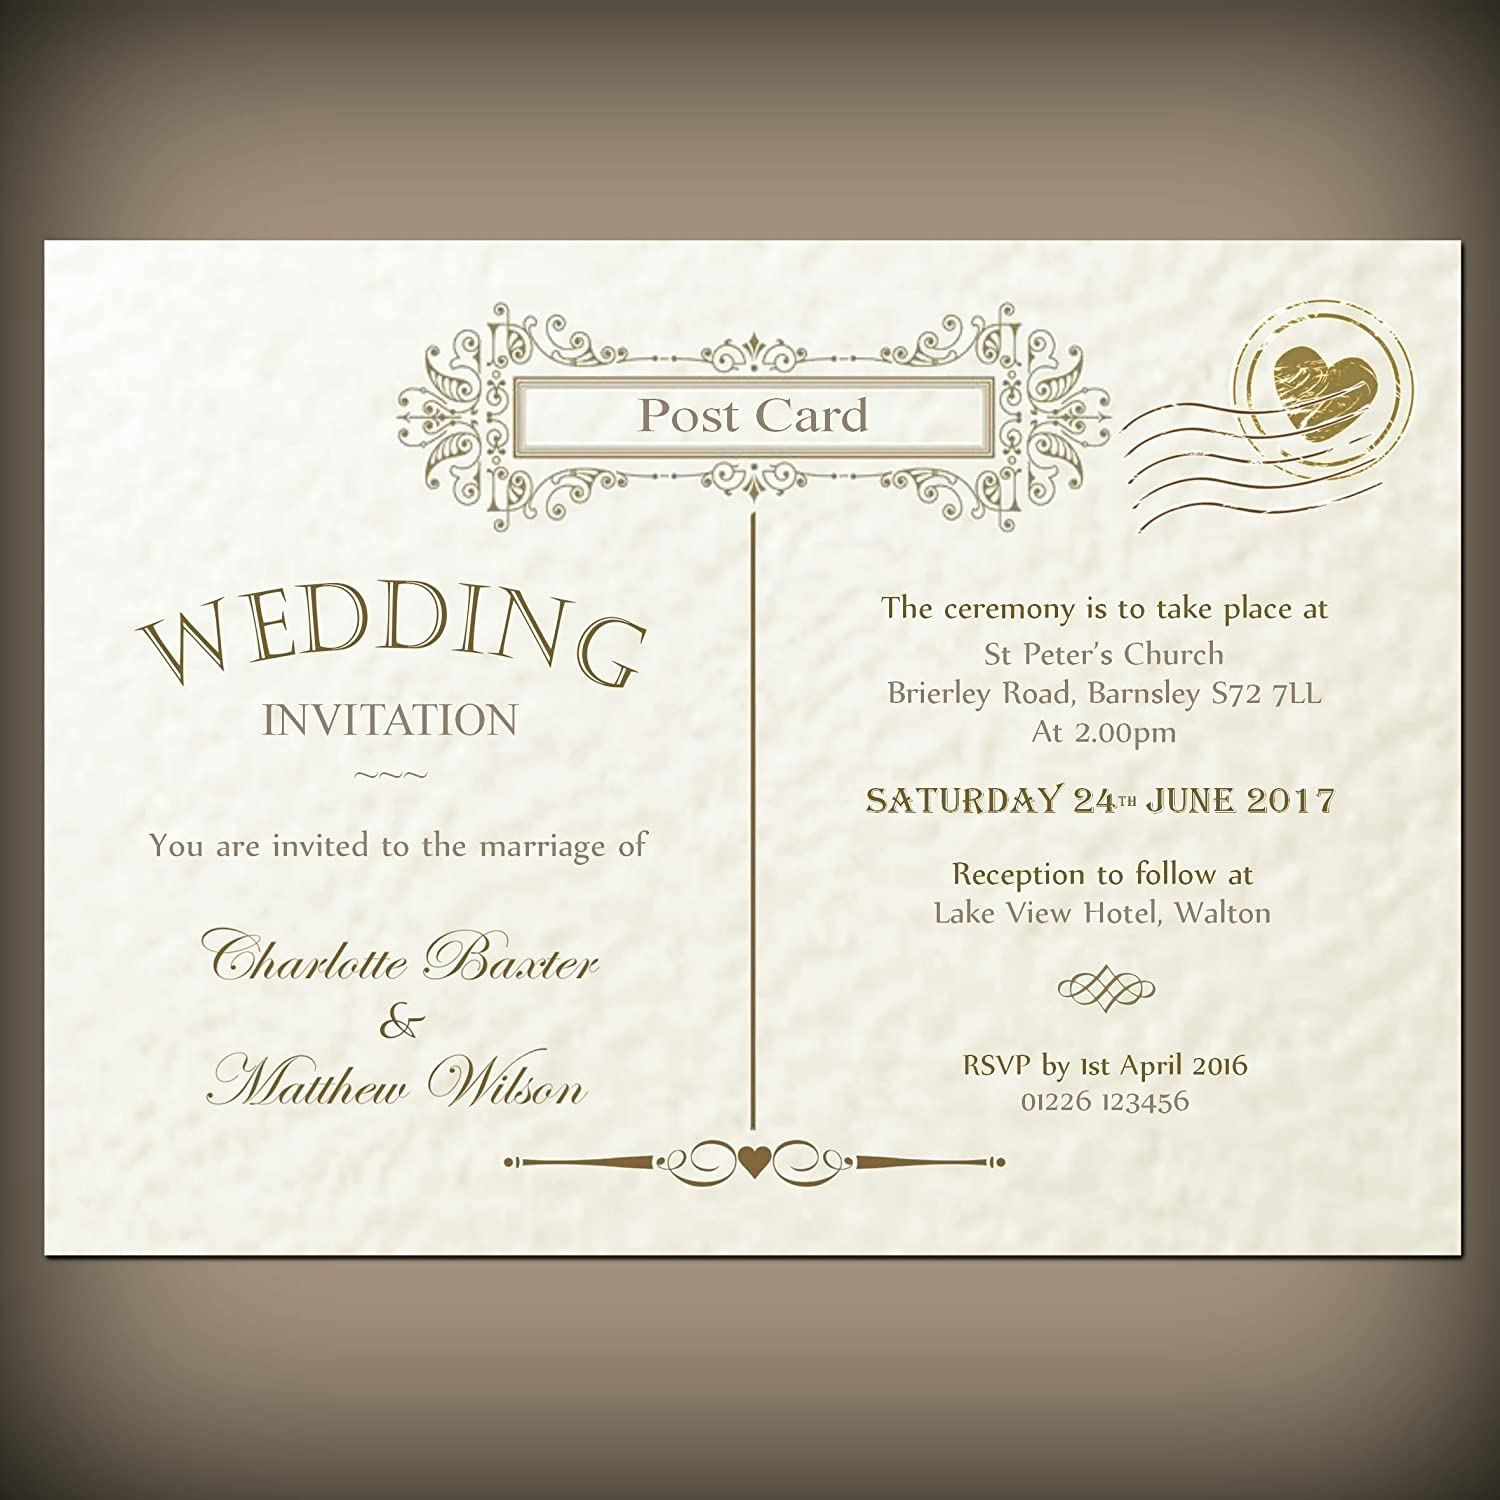 10 Personalised wedding or evening invitations with envelopes, Vintage postcard, ivory or white hammered card.